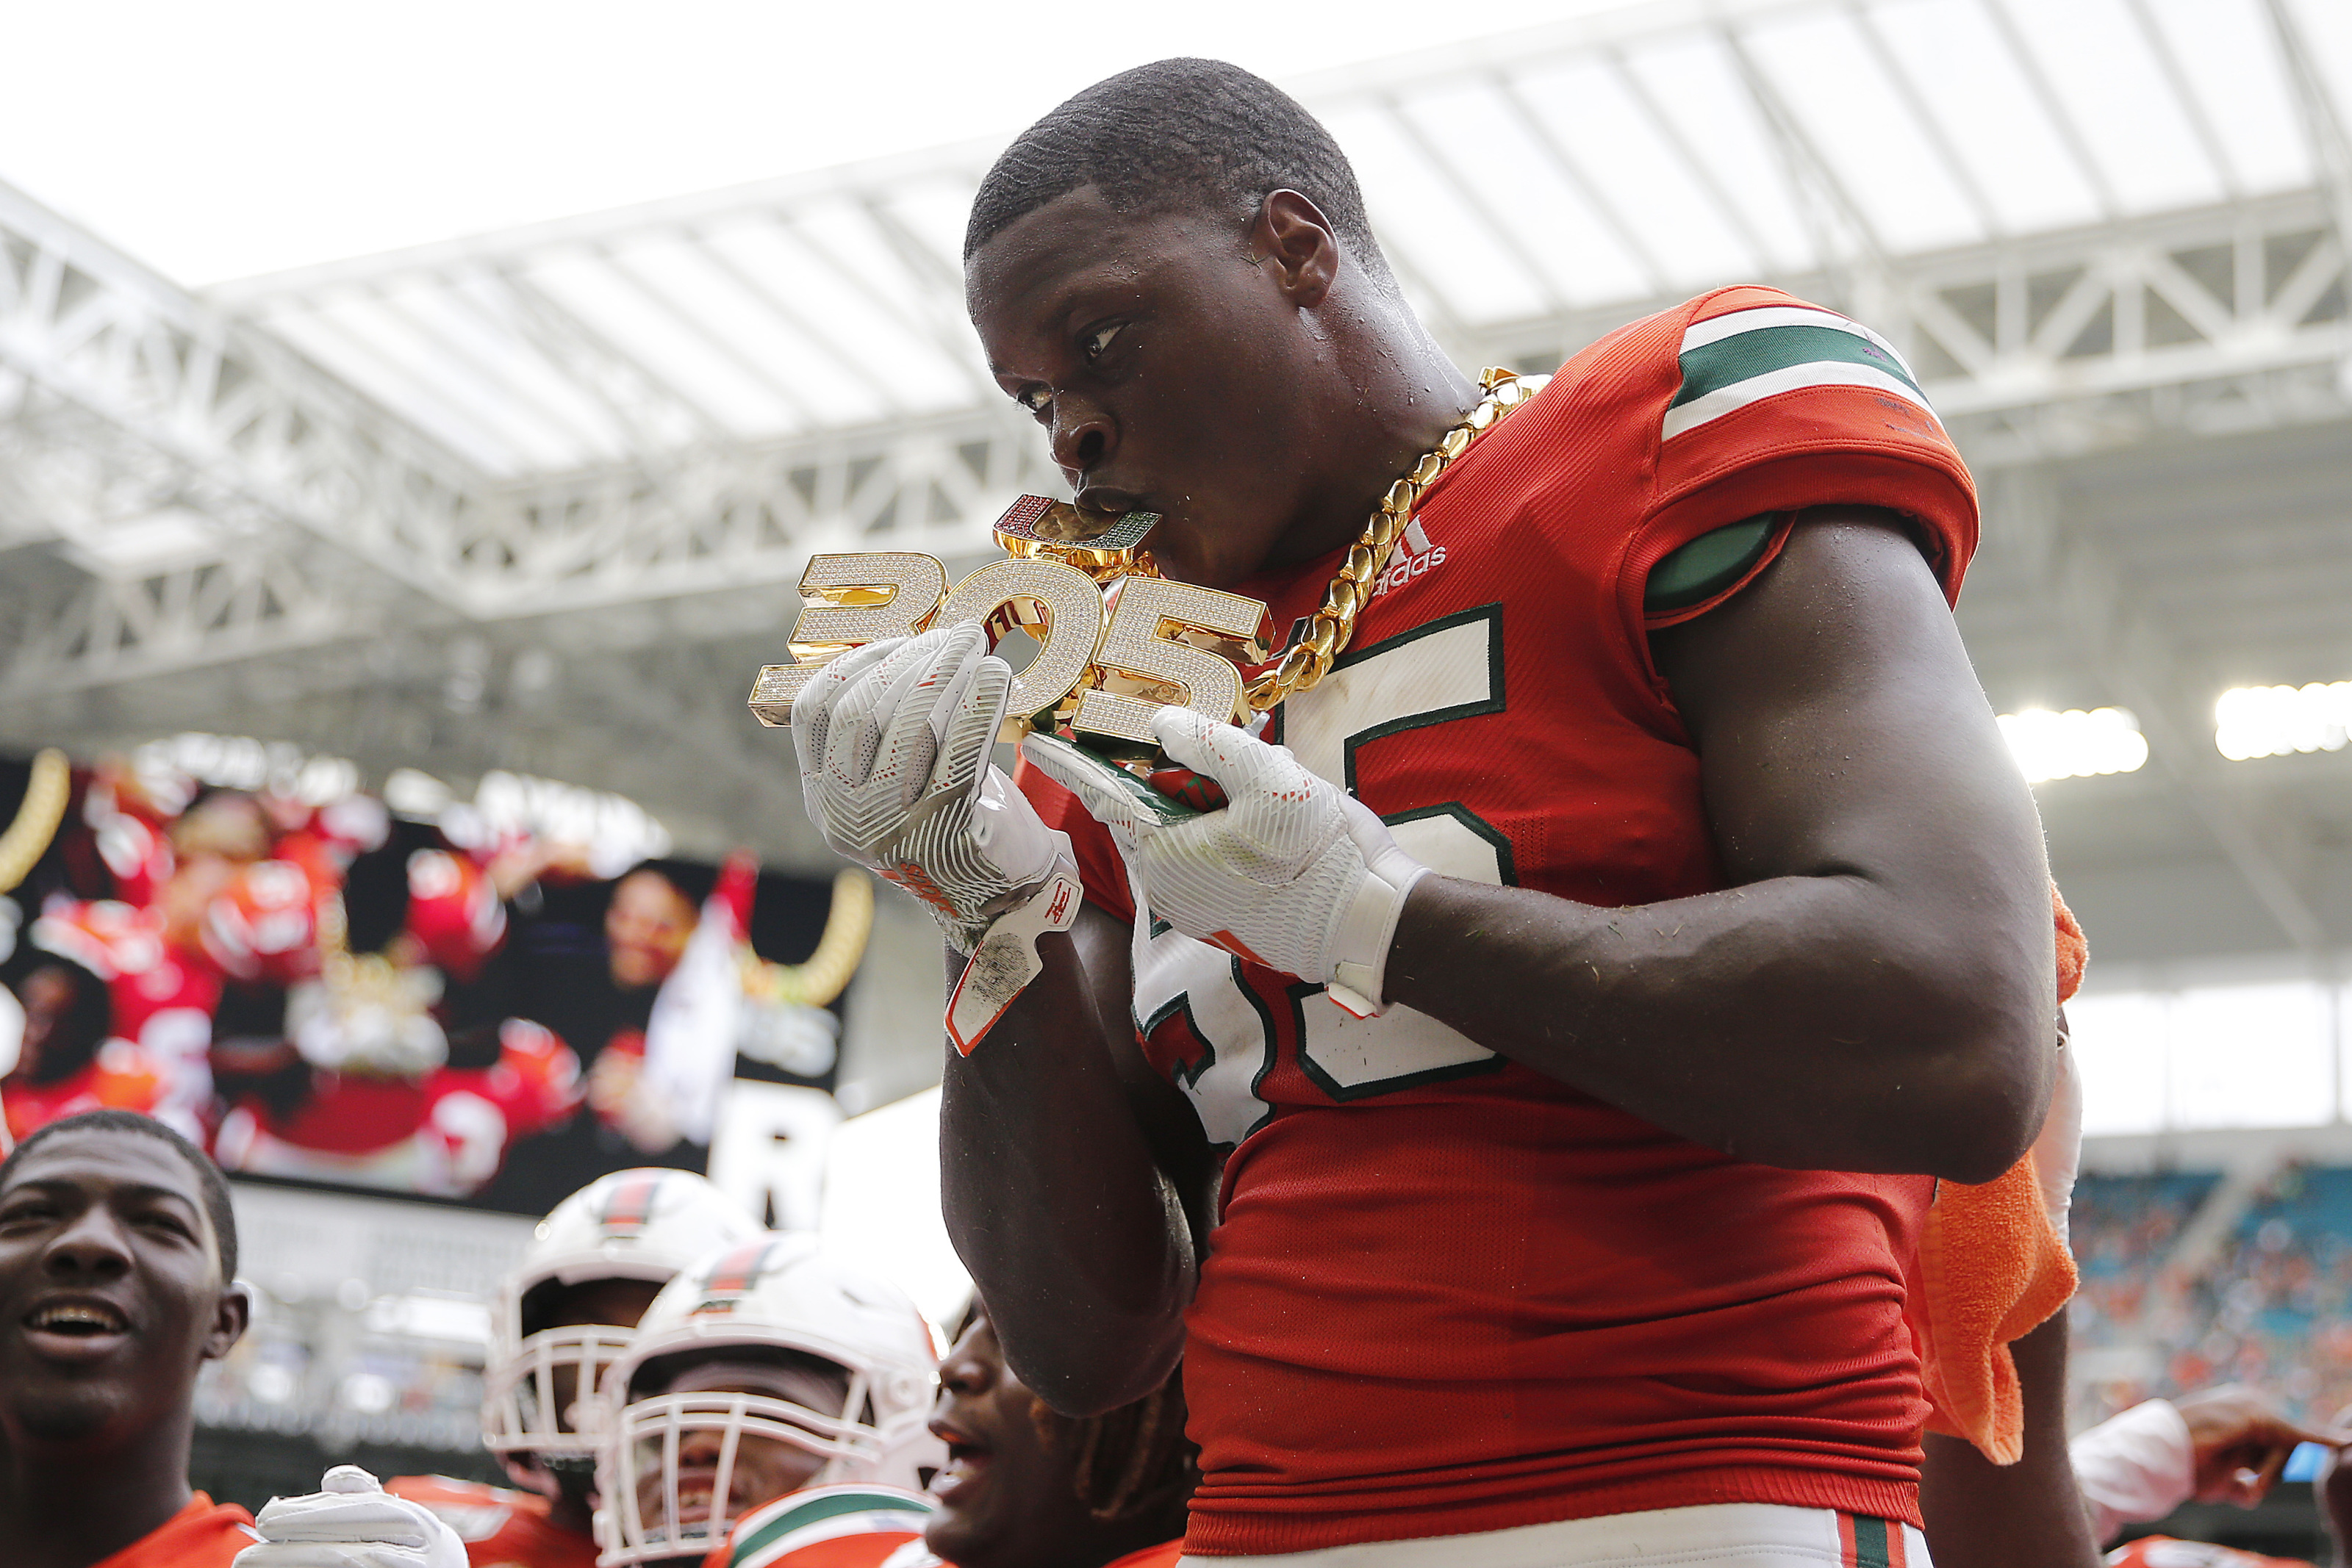 Baltimore Ravens scouting reports: Shaquille Quarterman the stat machine